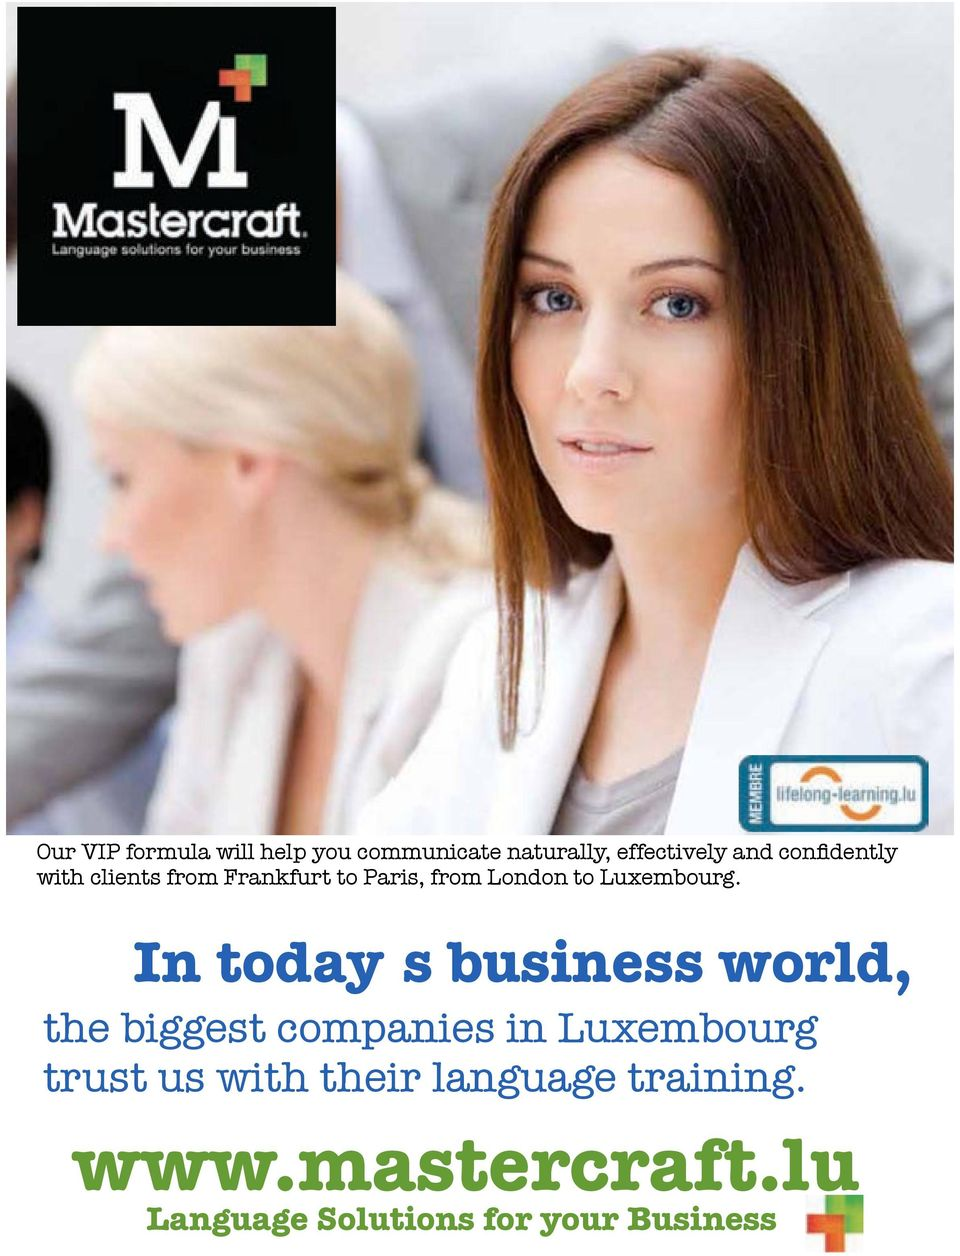 In todayõ s business world, the biggest companies in Luxembourg trust us